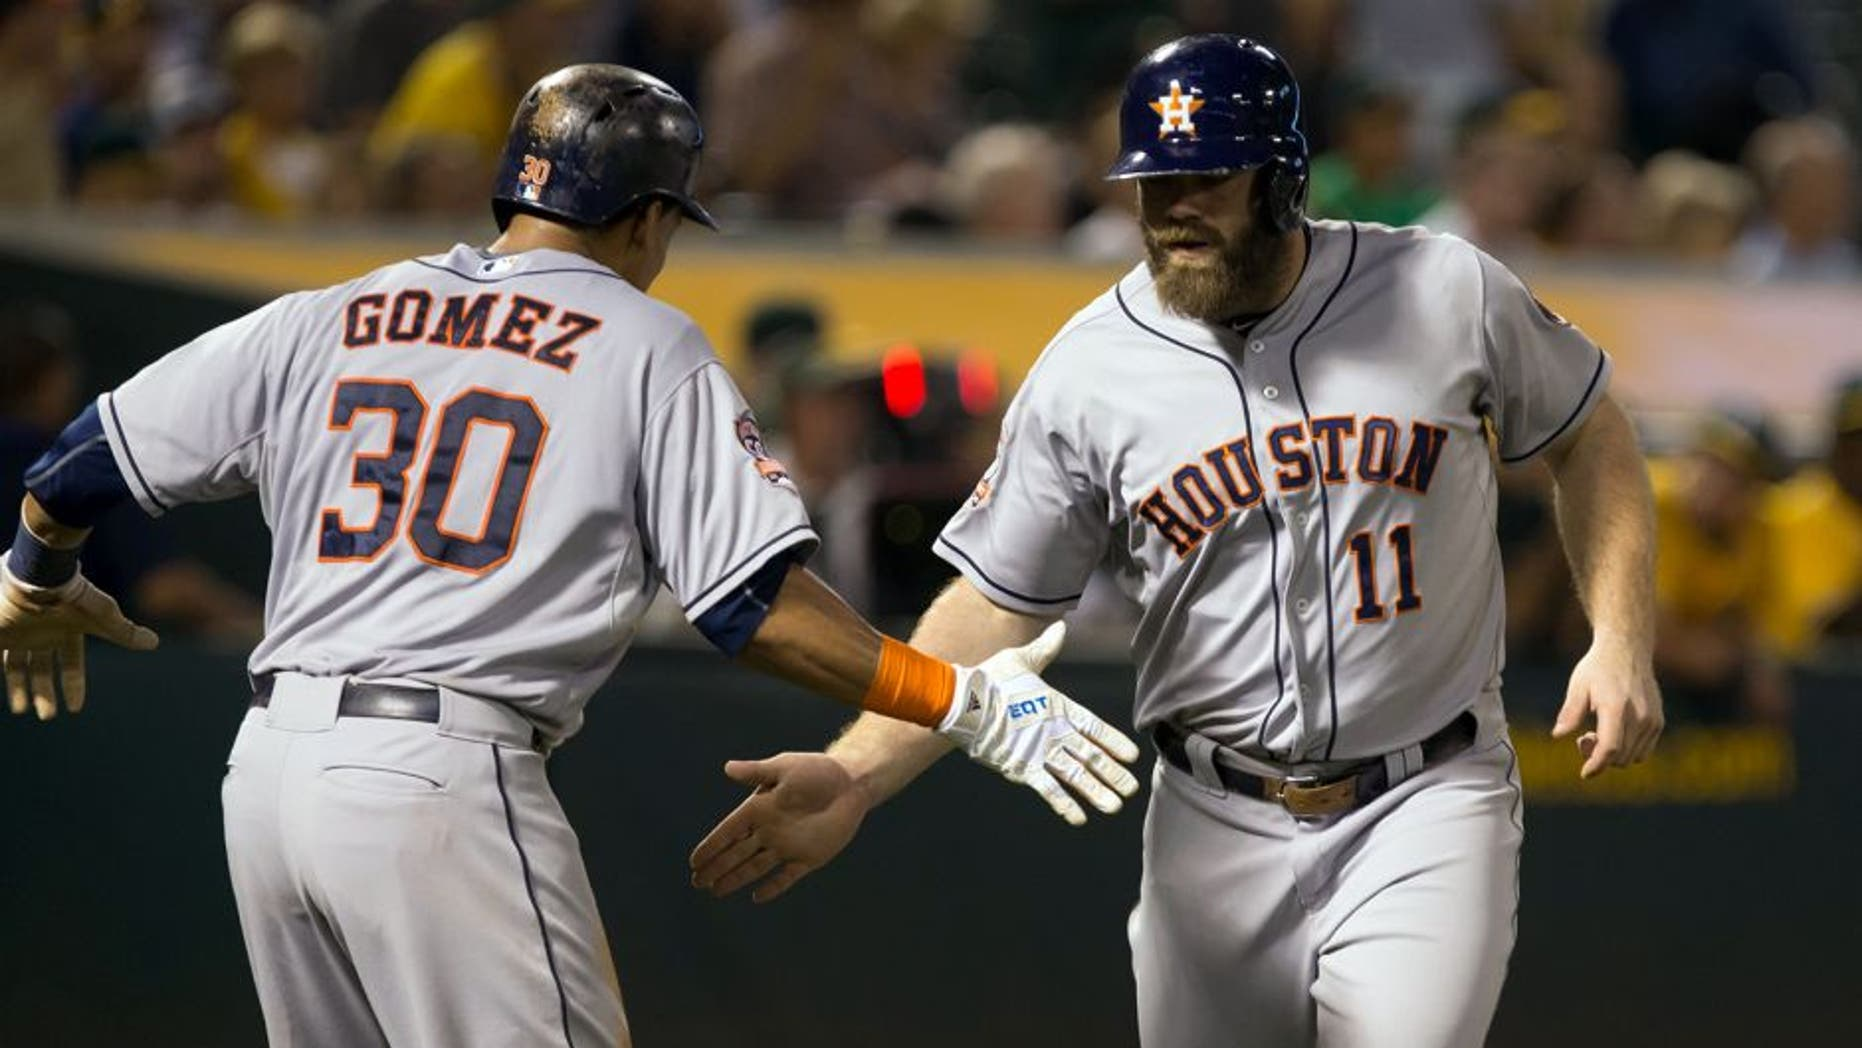 Sep 9, 2015; Oakland, CA, USA; Houston Astros designated hitter Evan Gattis (11) high fives center fielder Carlos Gomez (30) after batting him in on a two run home run against the Oakland Athletics during the fifth inning at O.co Coliseum. Mandatory Credit: Kelley L Cox-USA TODAY Sports